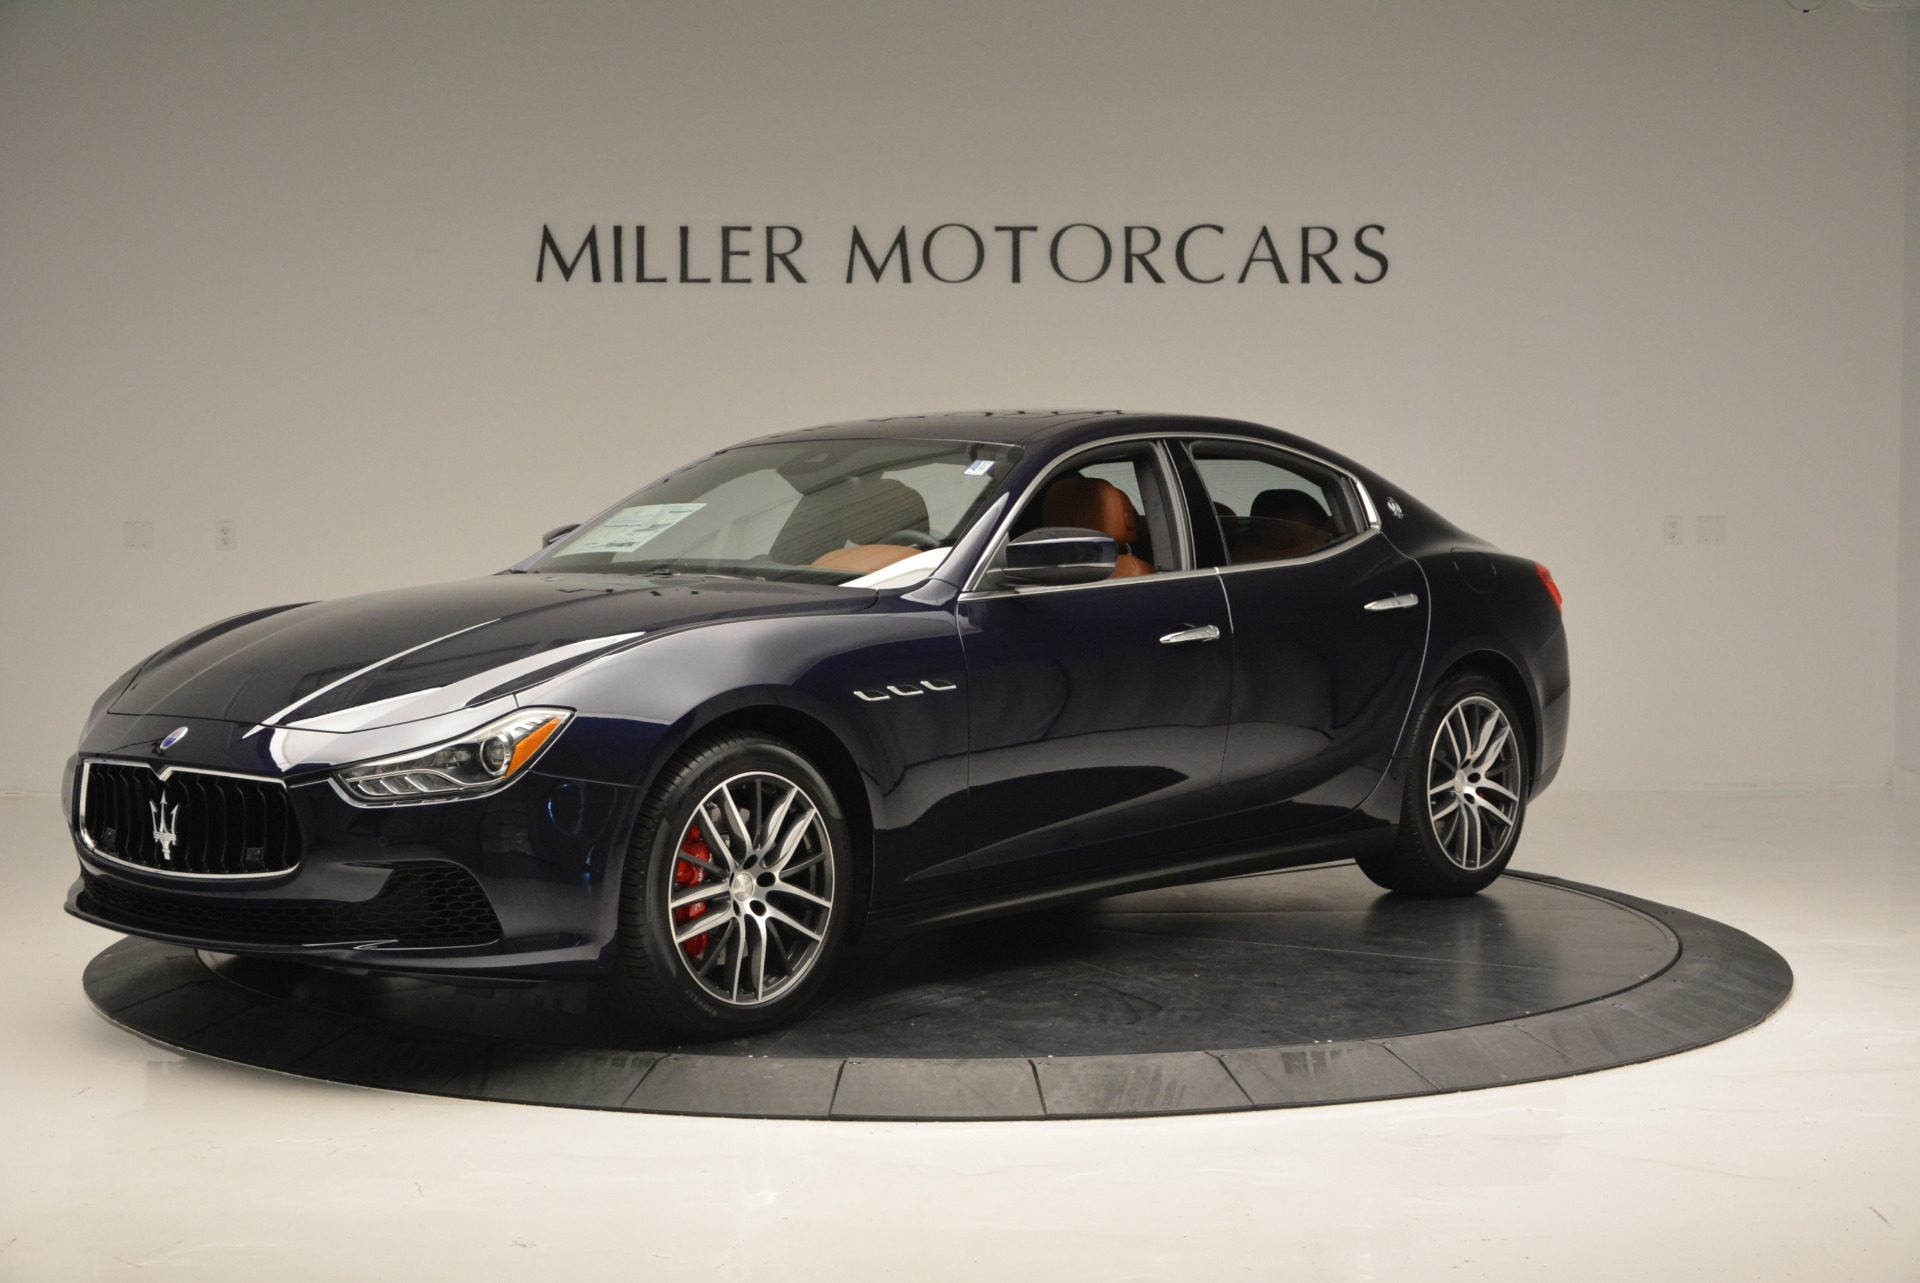 Used 2017 Maserati Ghibli S Q4 - EX Loaner For Sale In Greenwich, CT 567_p2